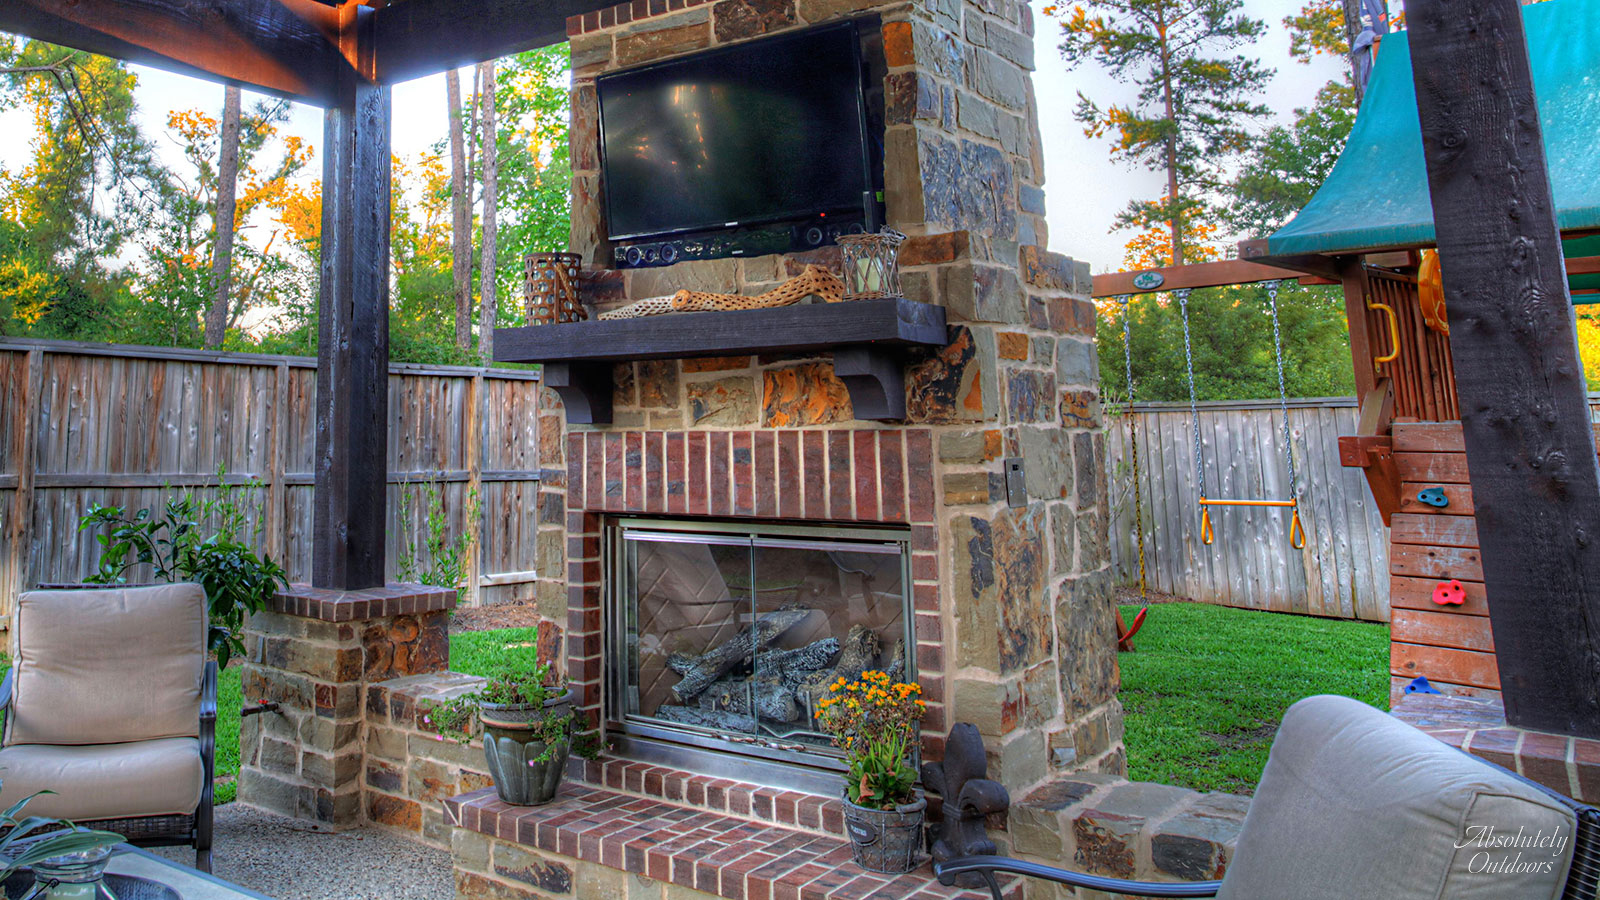 The Woodlands Fireplace Architectural Design